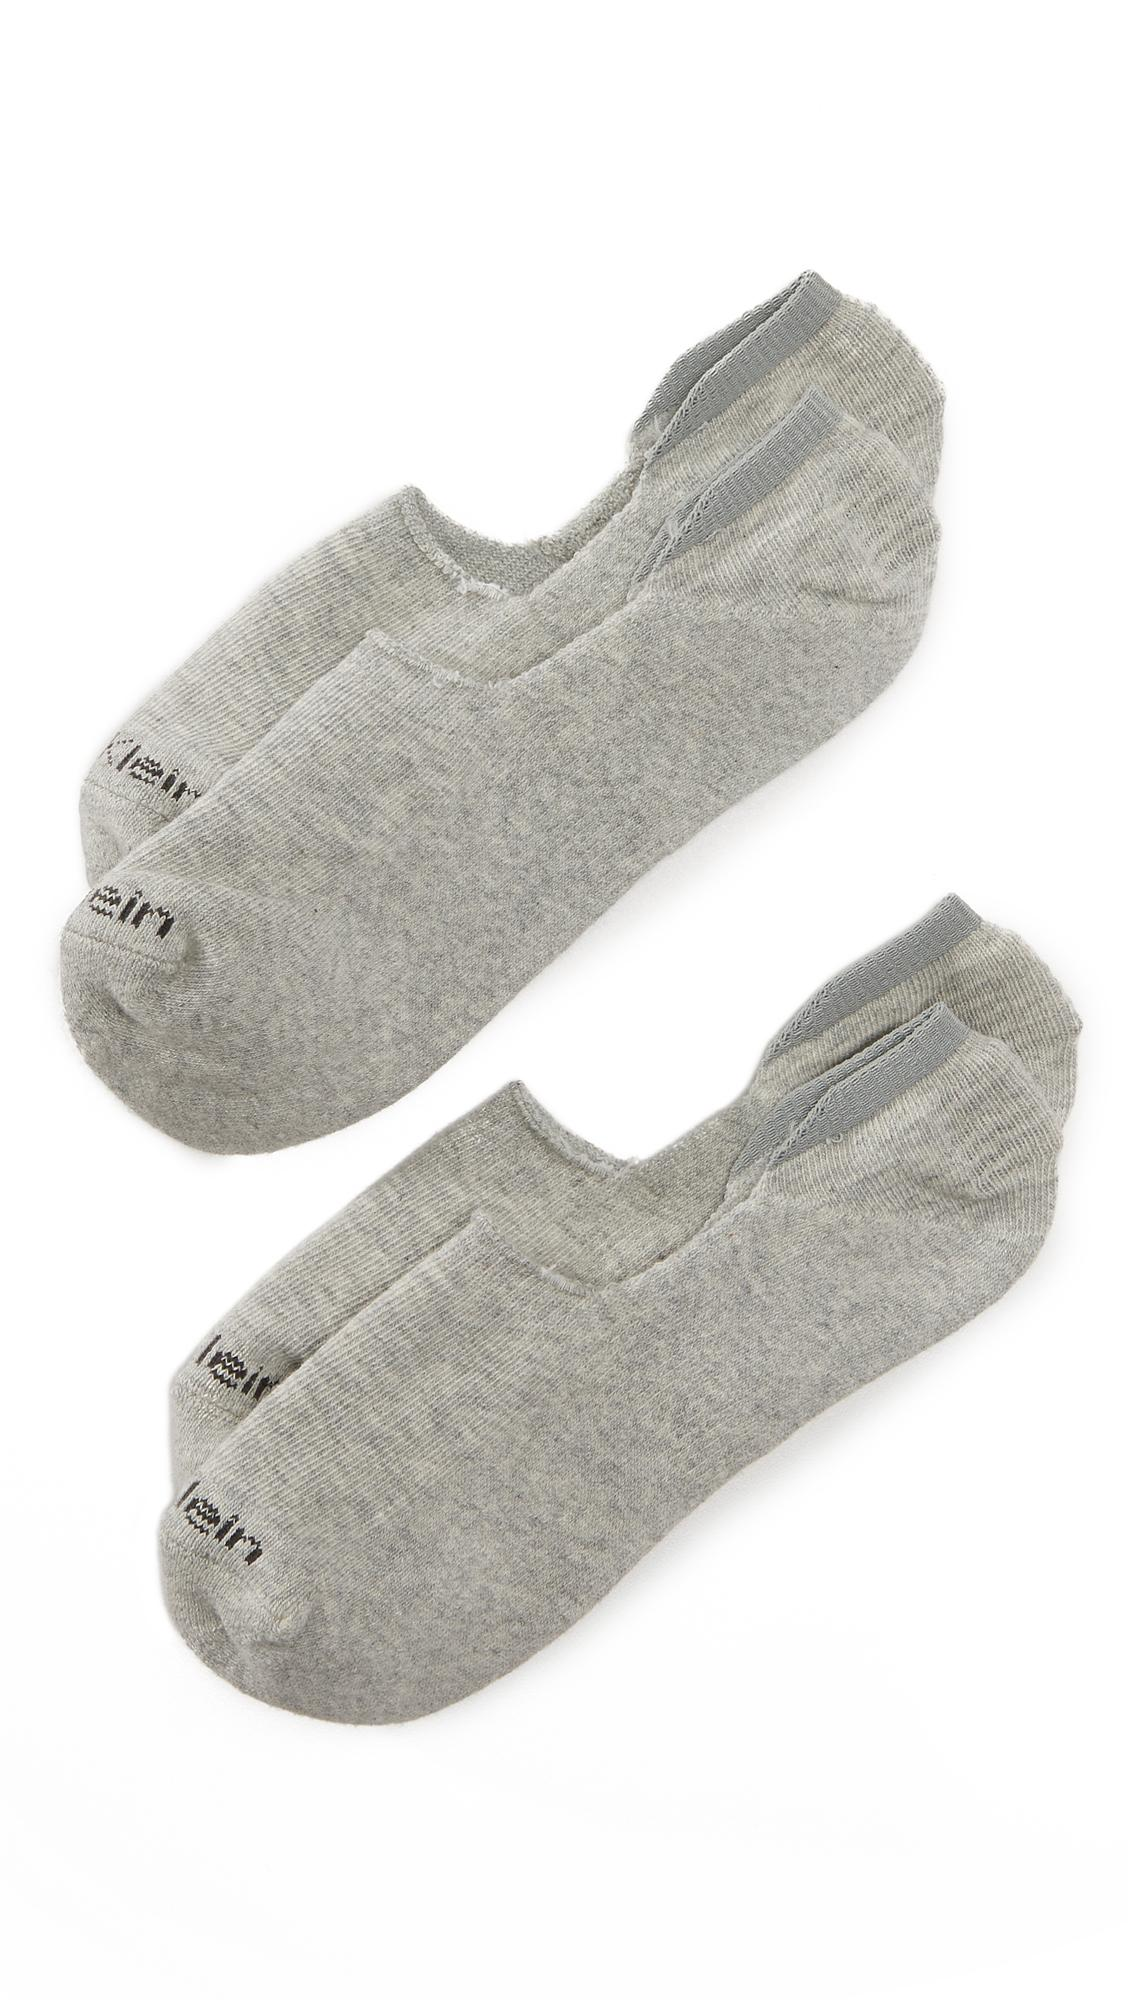 Calvin Klein Underwear 2 Pack Cushion No Show Socks In Oxford Heather